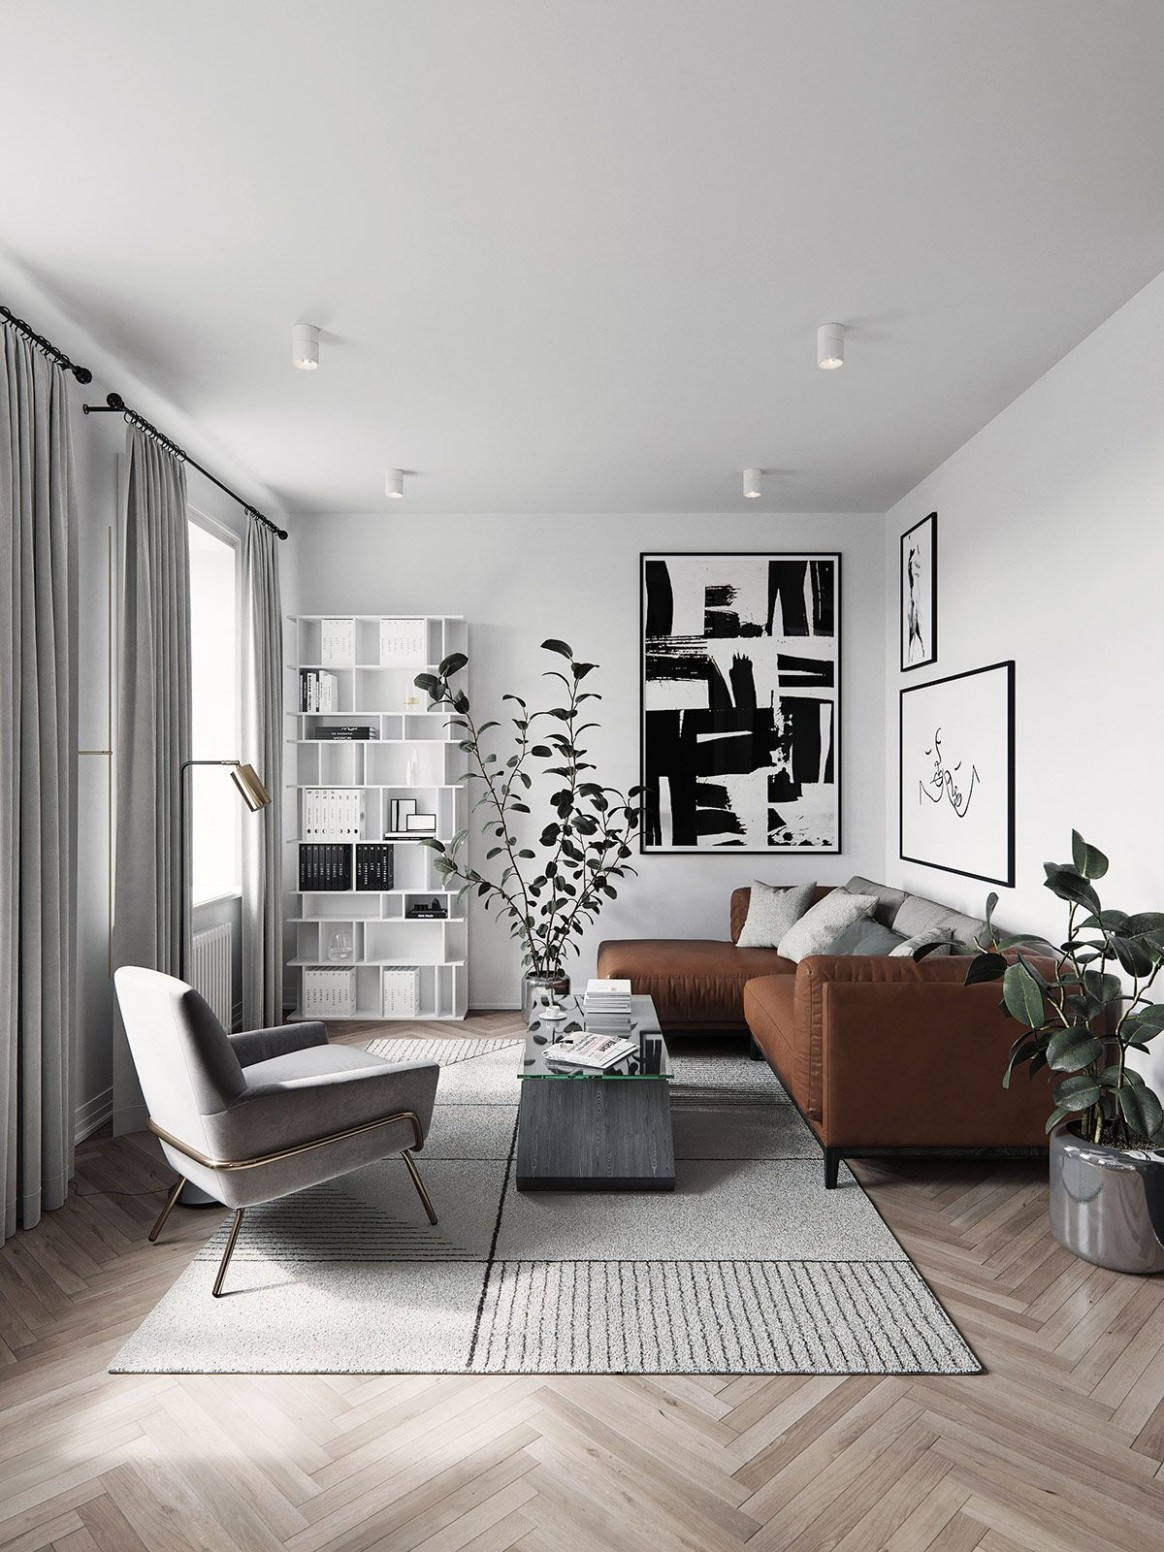 12 Homes Inspired by Different Takes on Nordic Interior Design  - Scandinavian Apartment Decor Ideas